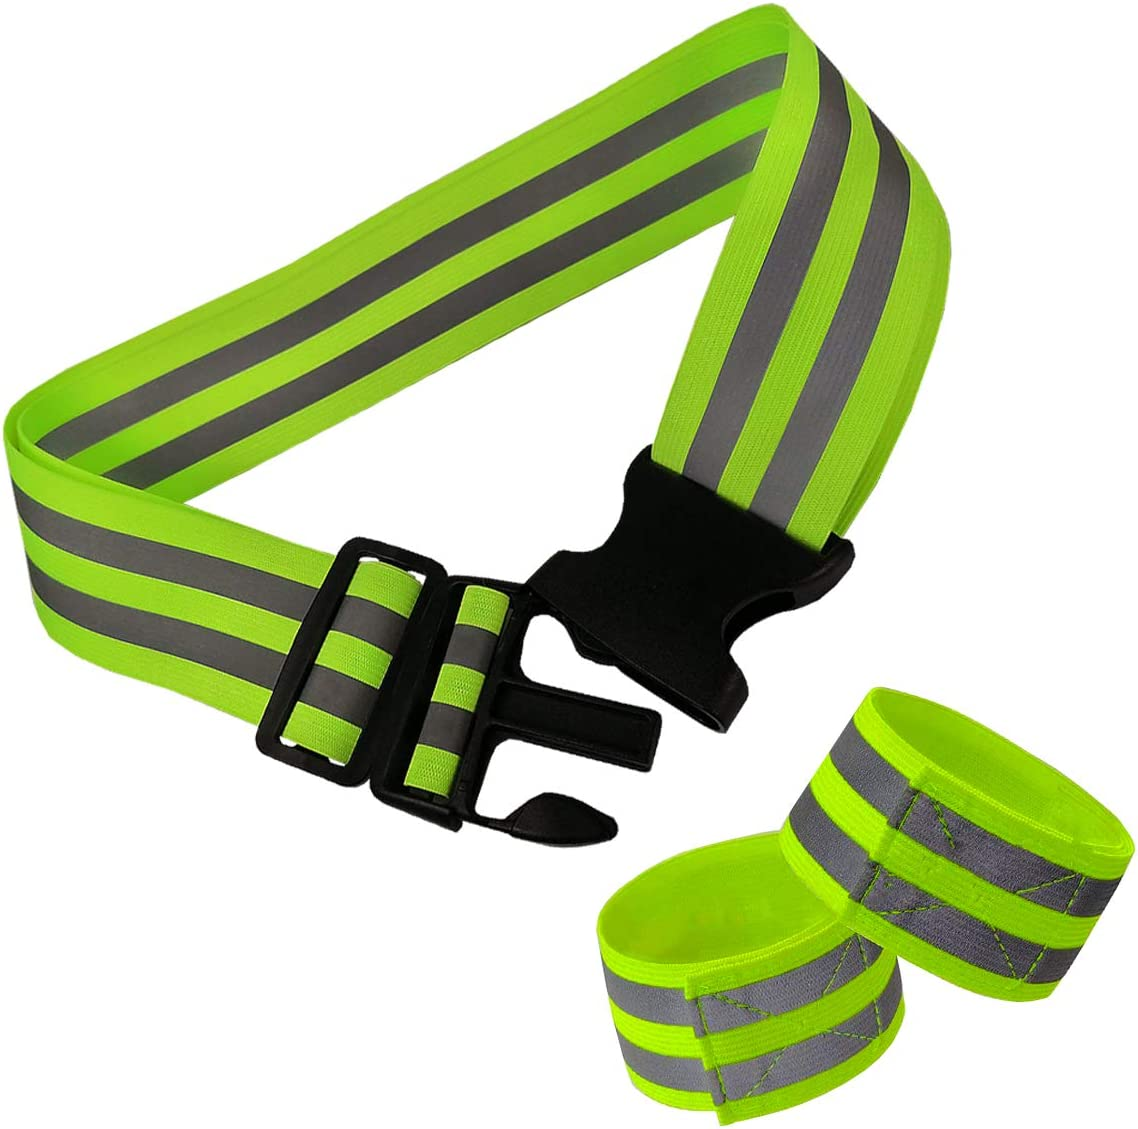 DOURR High Visibility Reflective Running Belt,Elastic Glow Belt Safety Gear Army Pt Belt with 2 Armband for for Night Running Cycling Walking